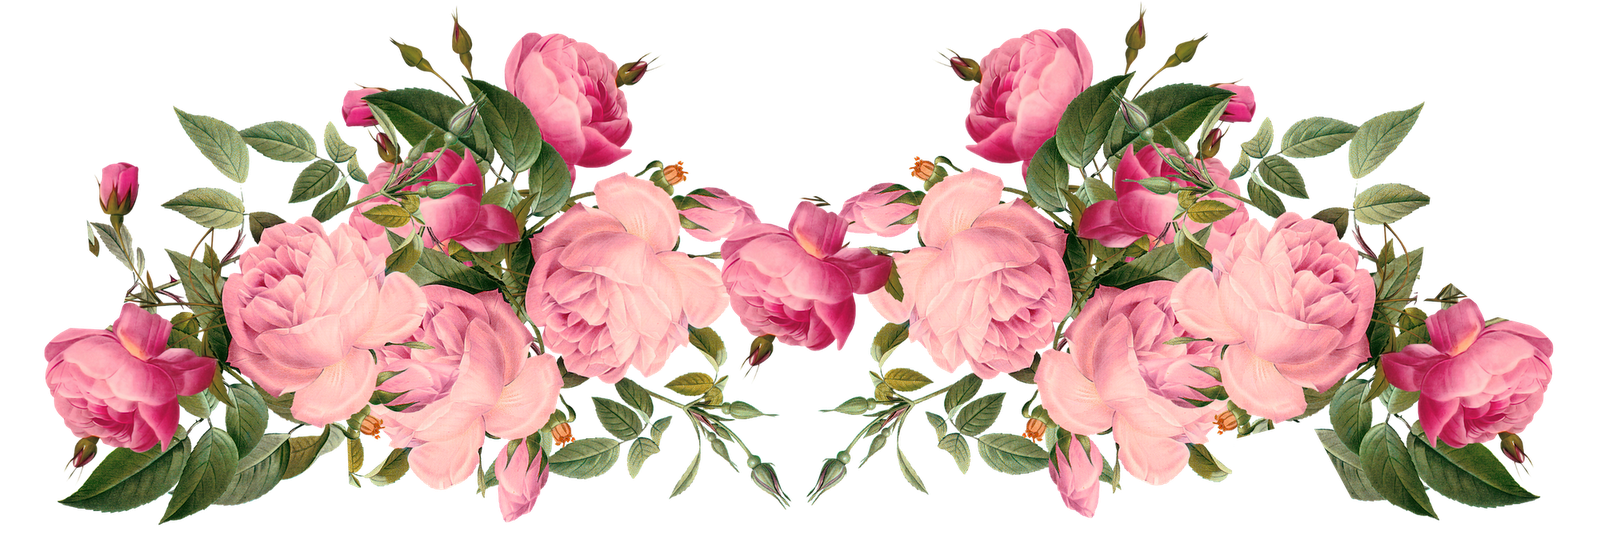 Flowers borders png transparent flowers bordersg images pluspng pink rose borders free pink roses border vintage style flowers borders png mightylinksfo